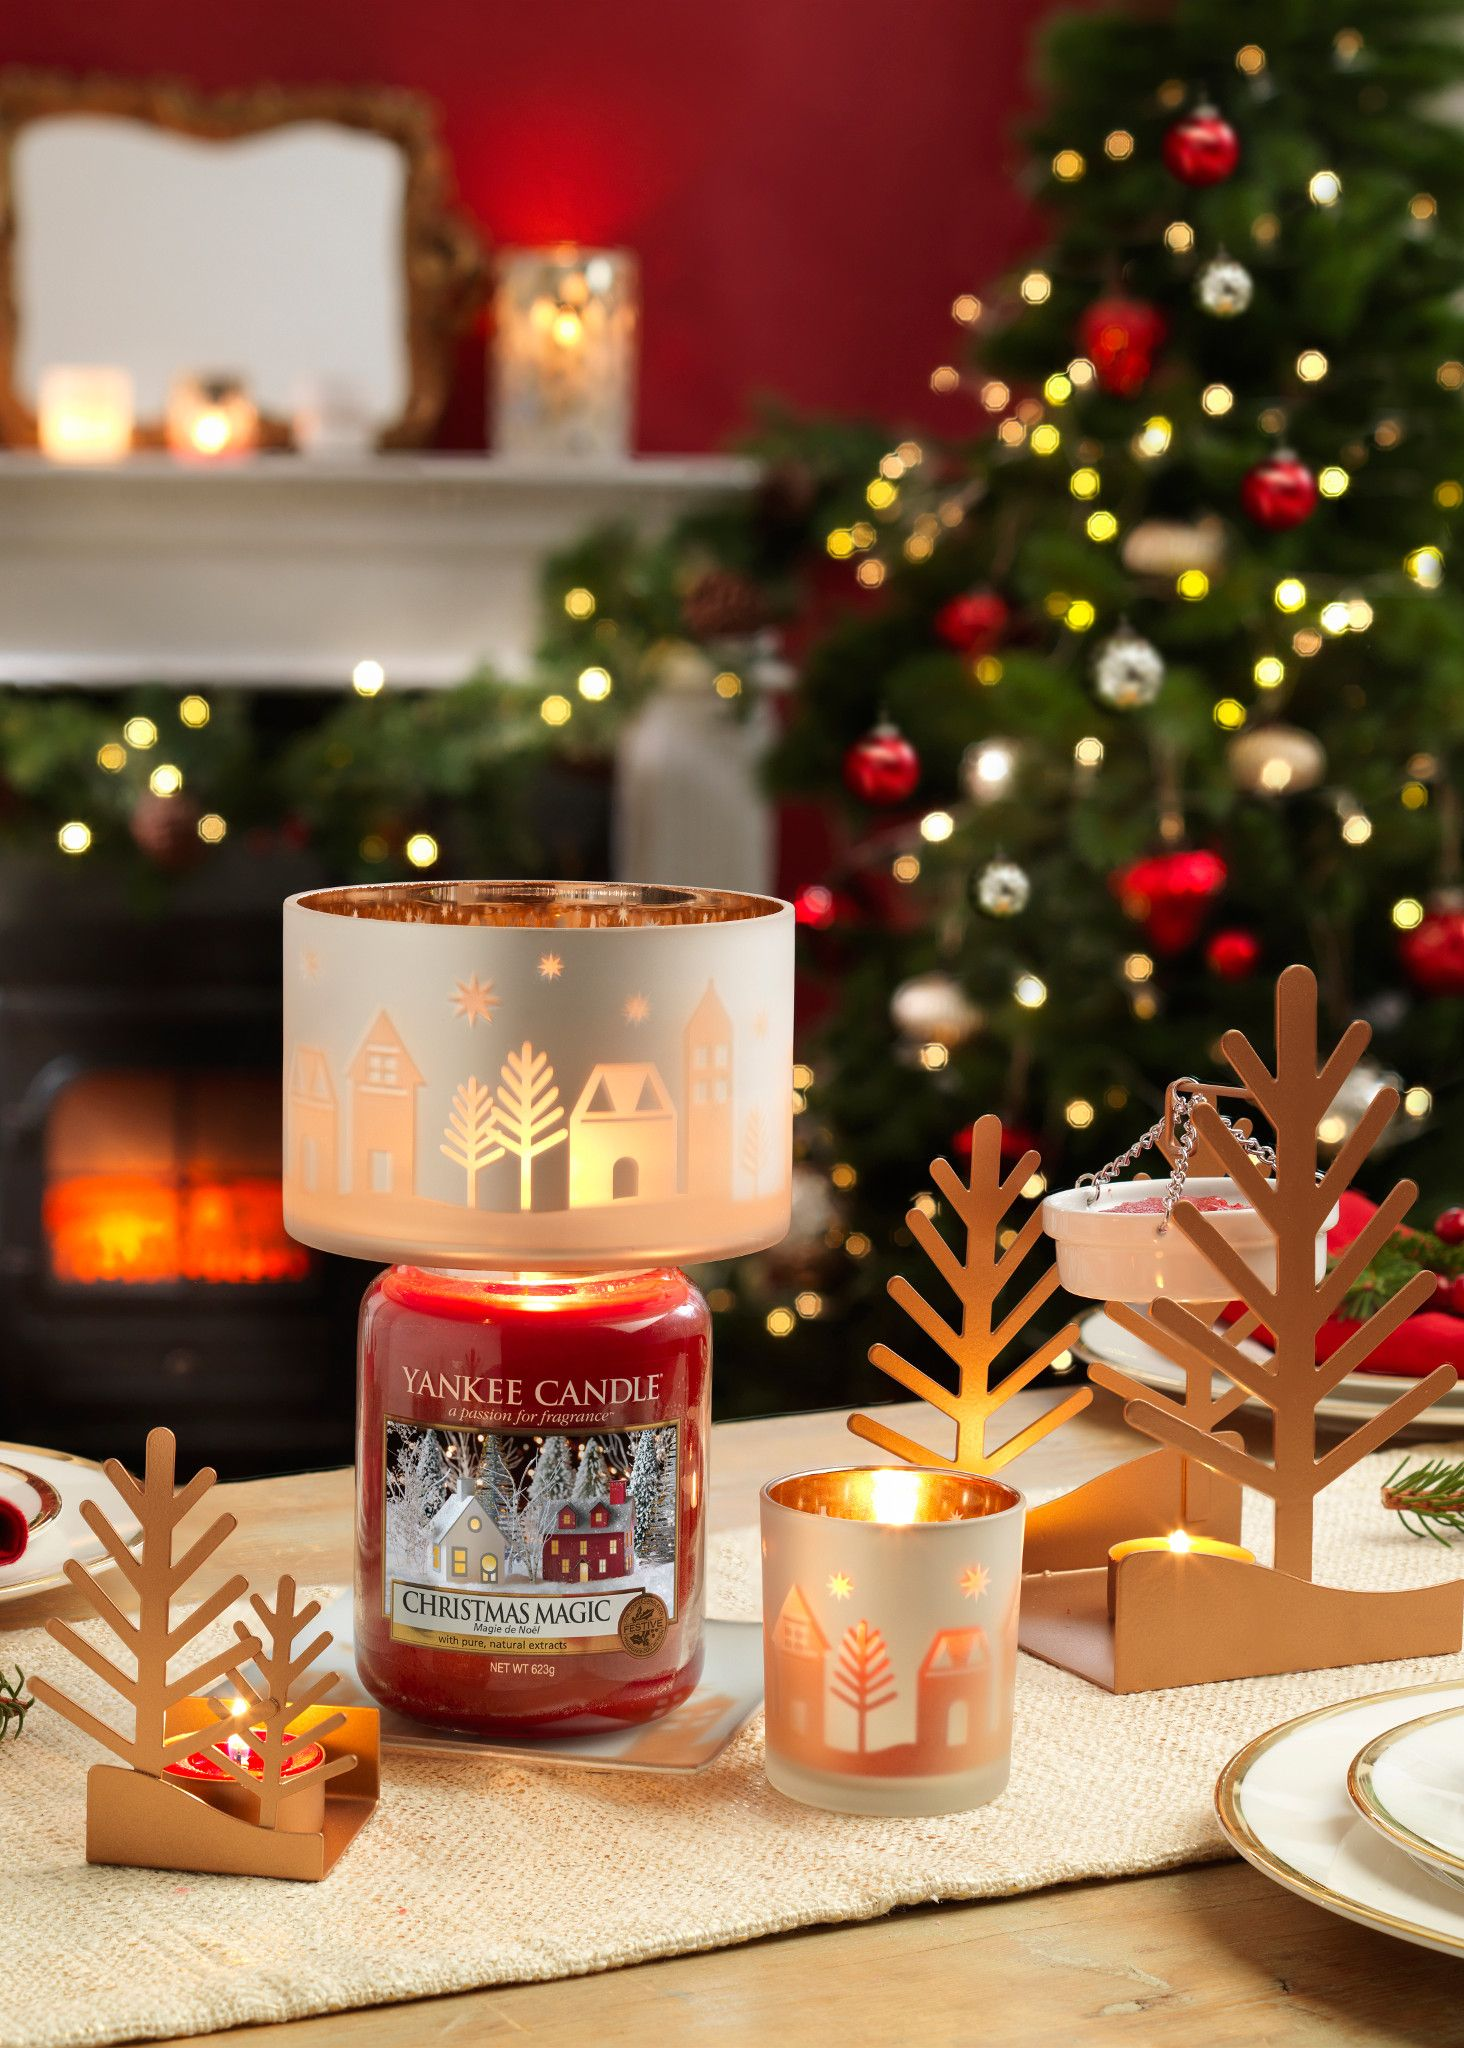 Yankee Candle Natale.Collection Winter Village In 2019 Yankee Candle Christmas